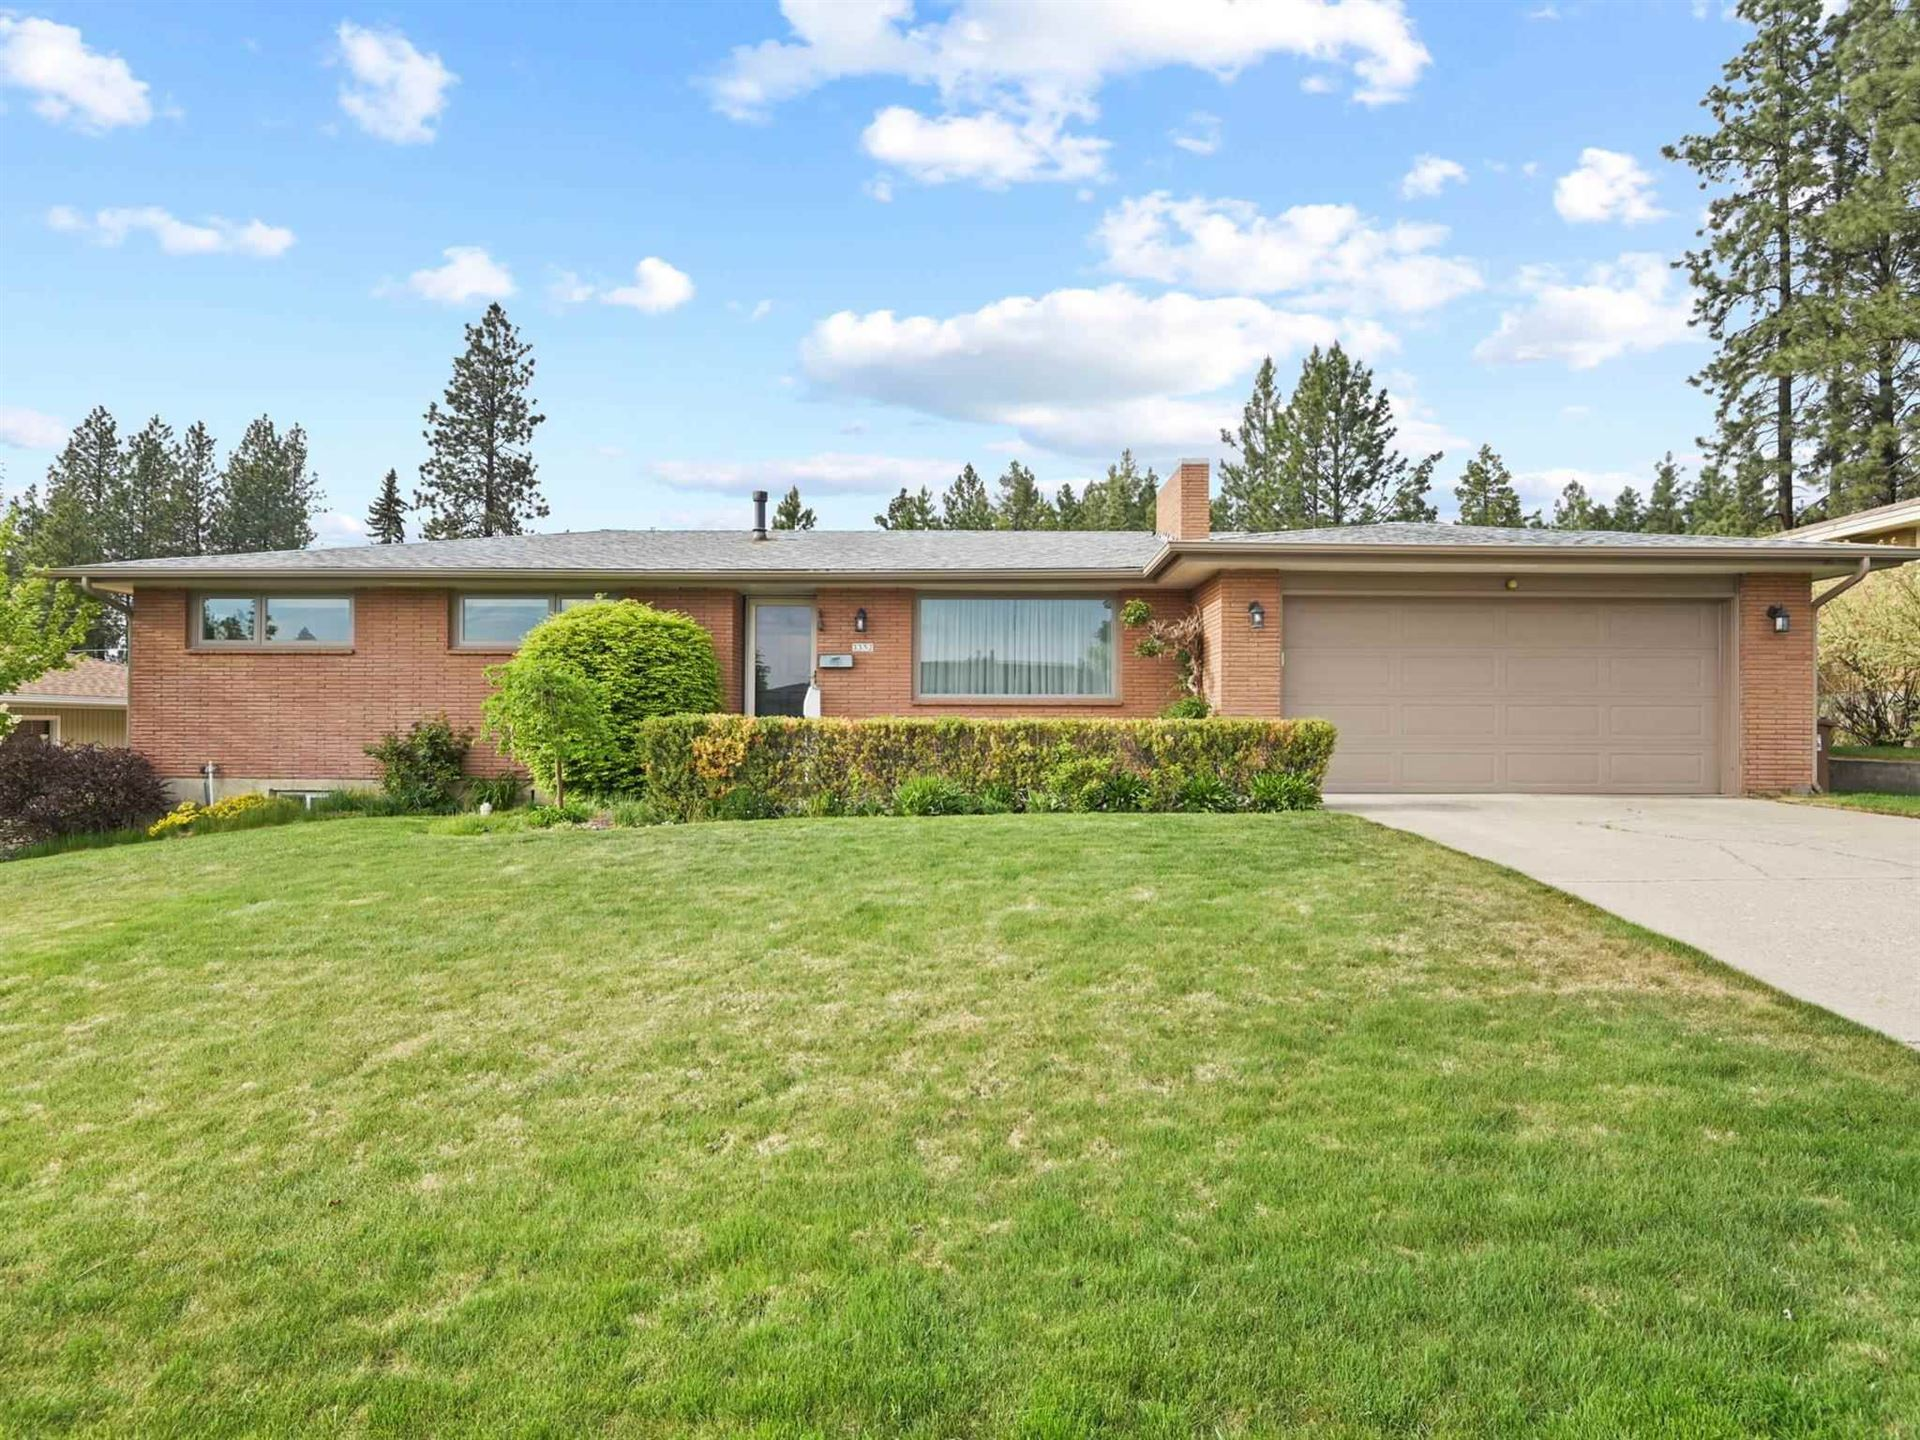 3352 W Woodside Ave, Spokane, WA 99208 - #: 202115415